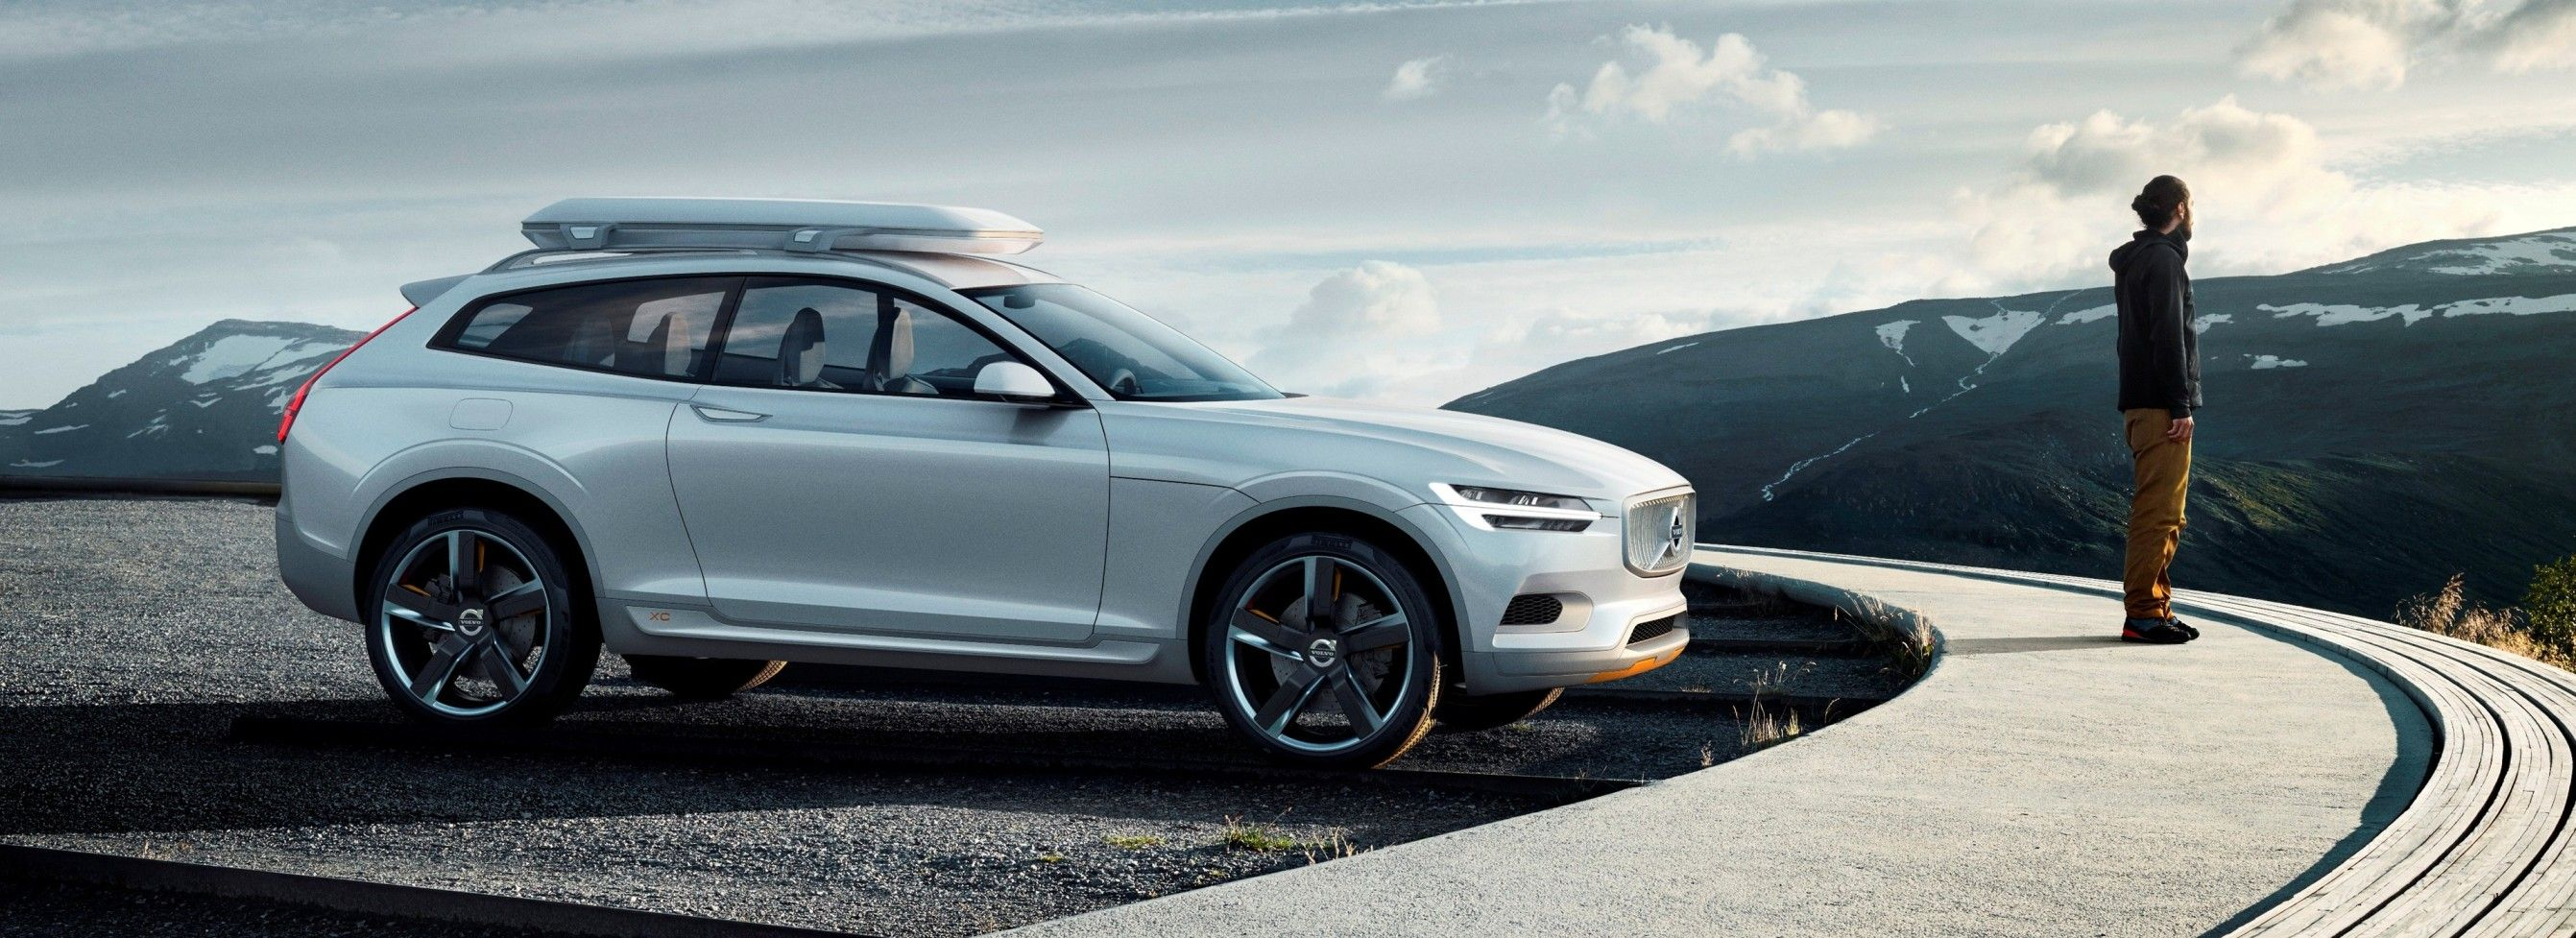 First of a series of three concept cars concept coupe represents the next generation of volvo models